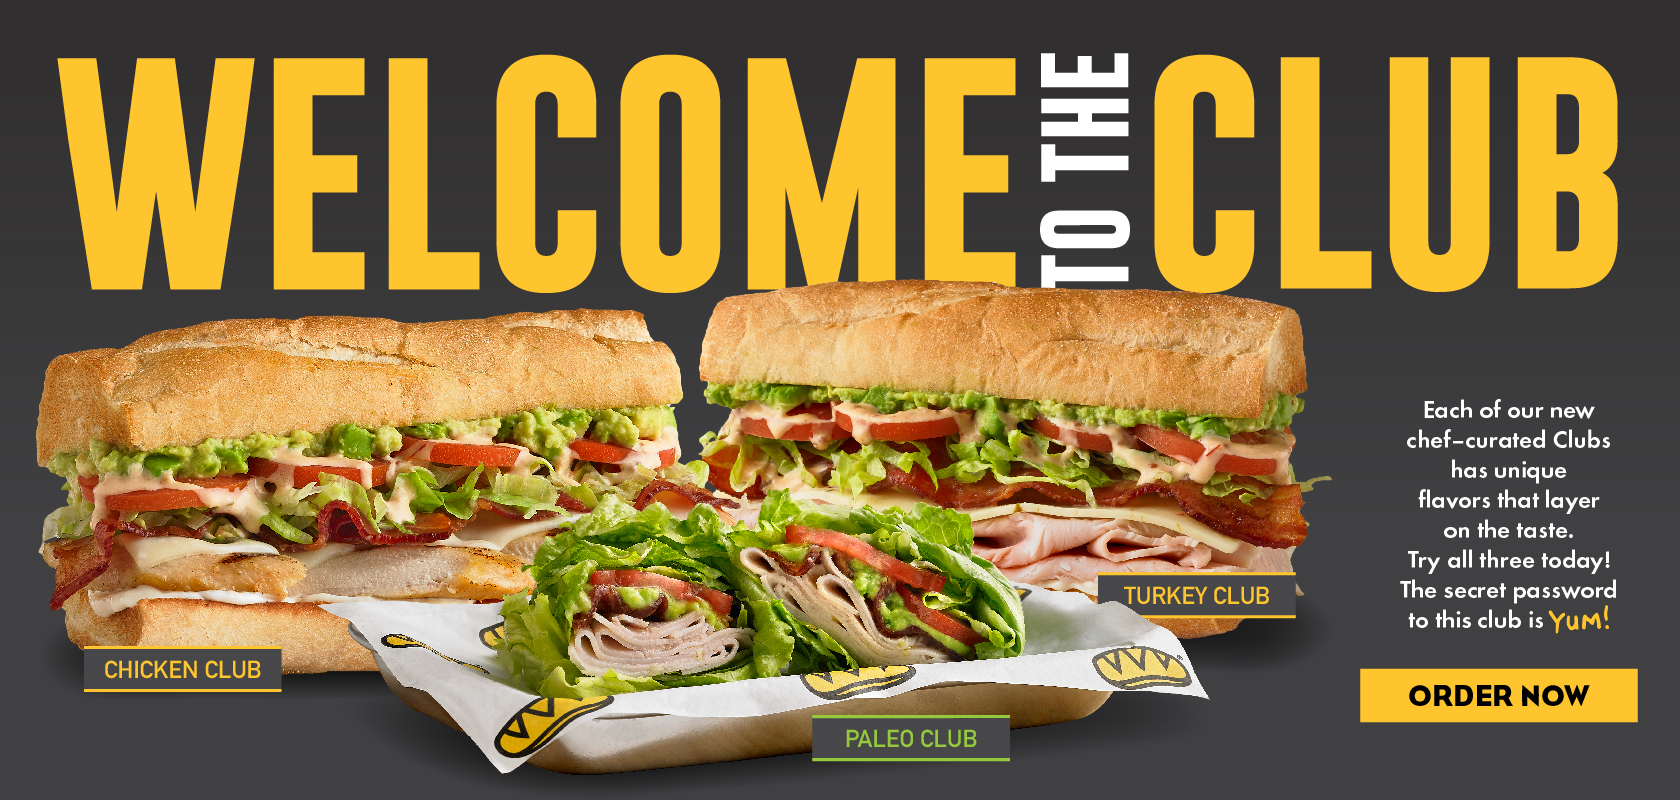 Welcome to the Club! Try all three today: Chicken Club, Paleo Club and Turkey Club. Order now.